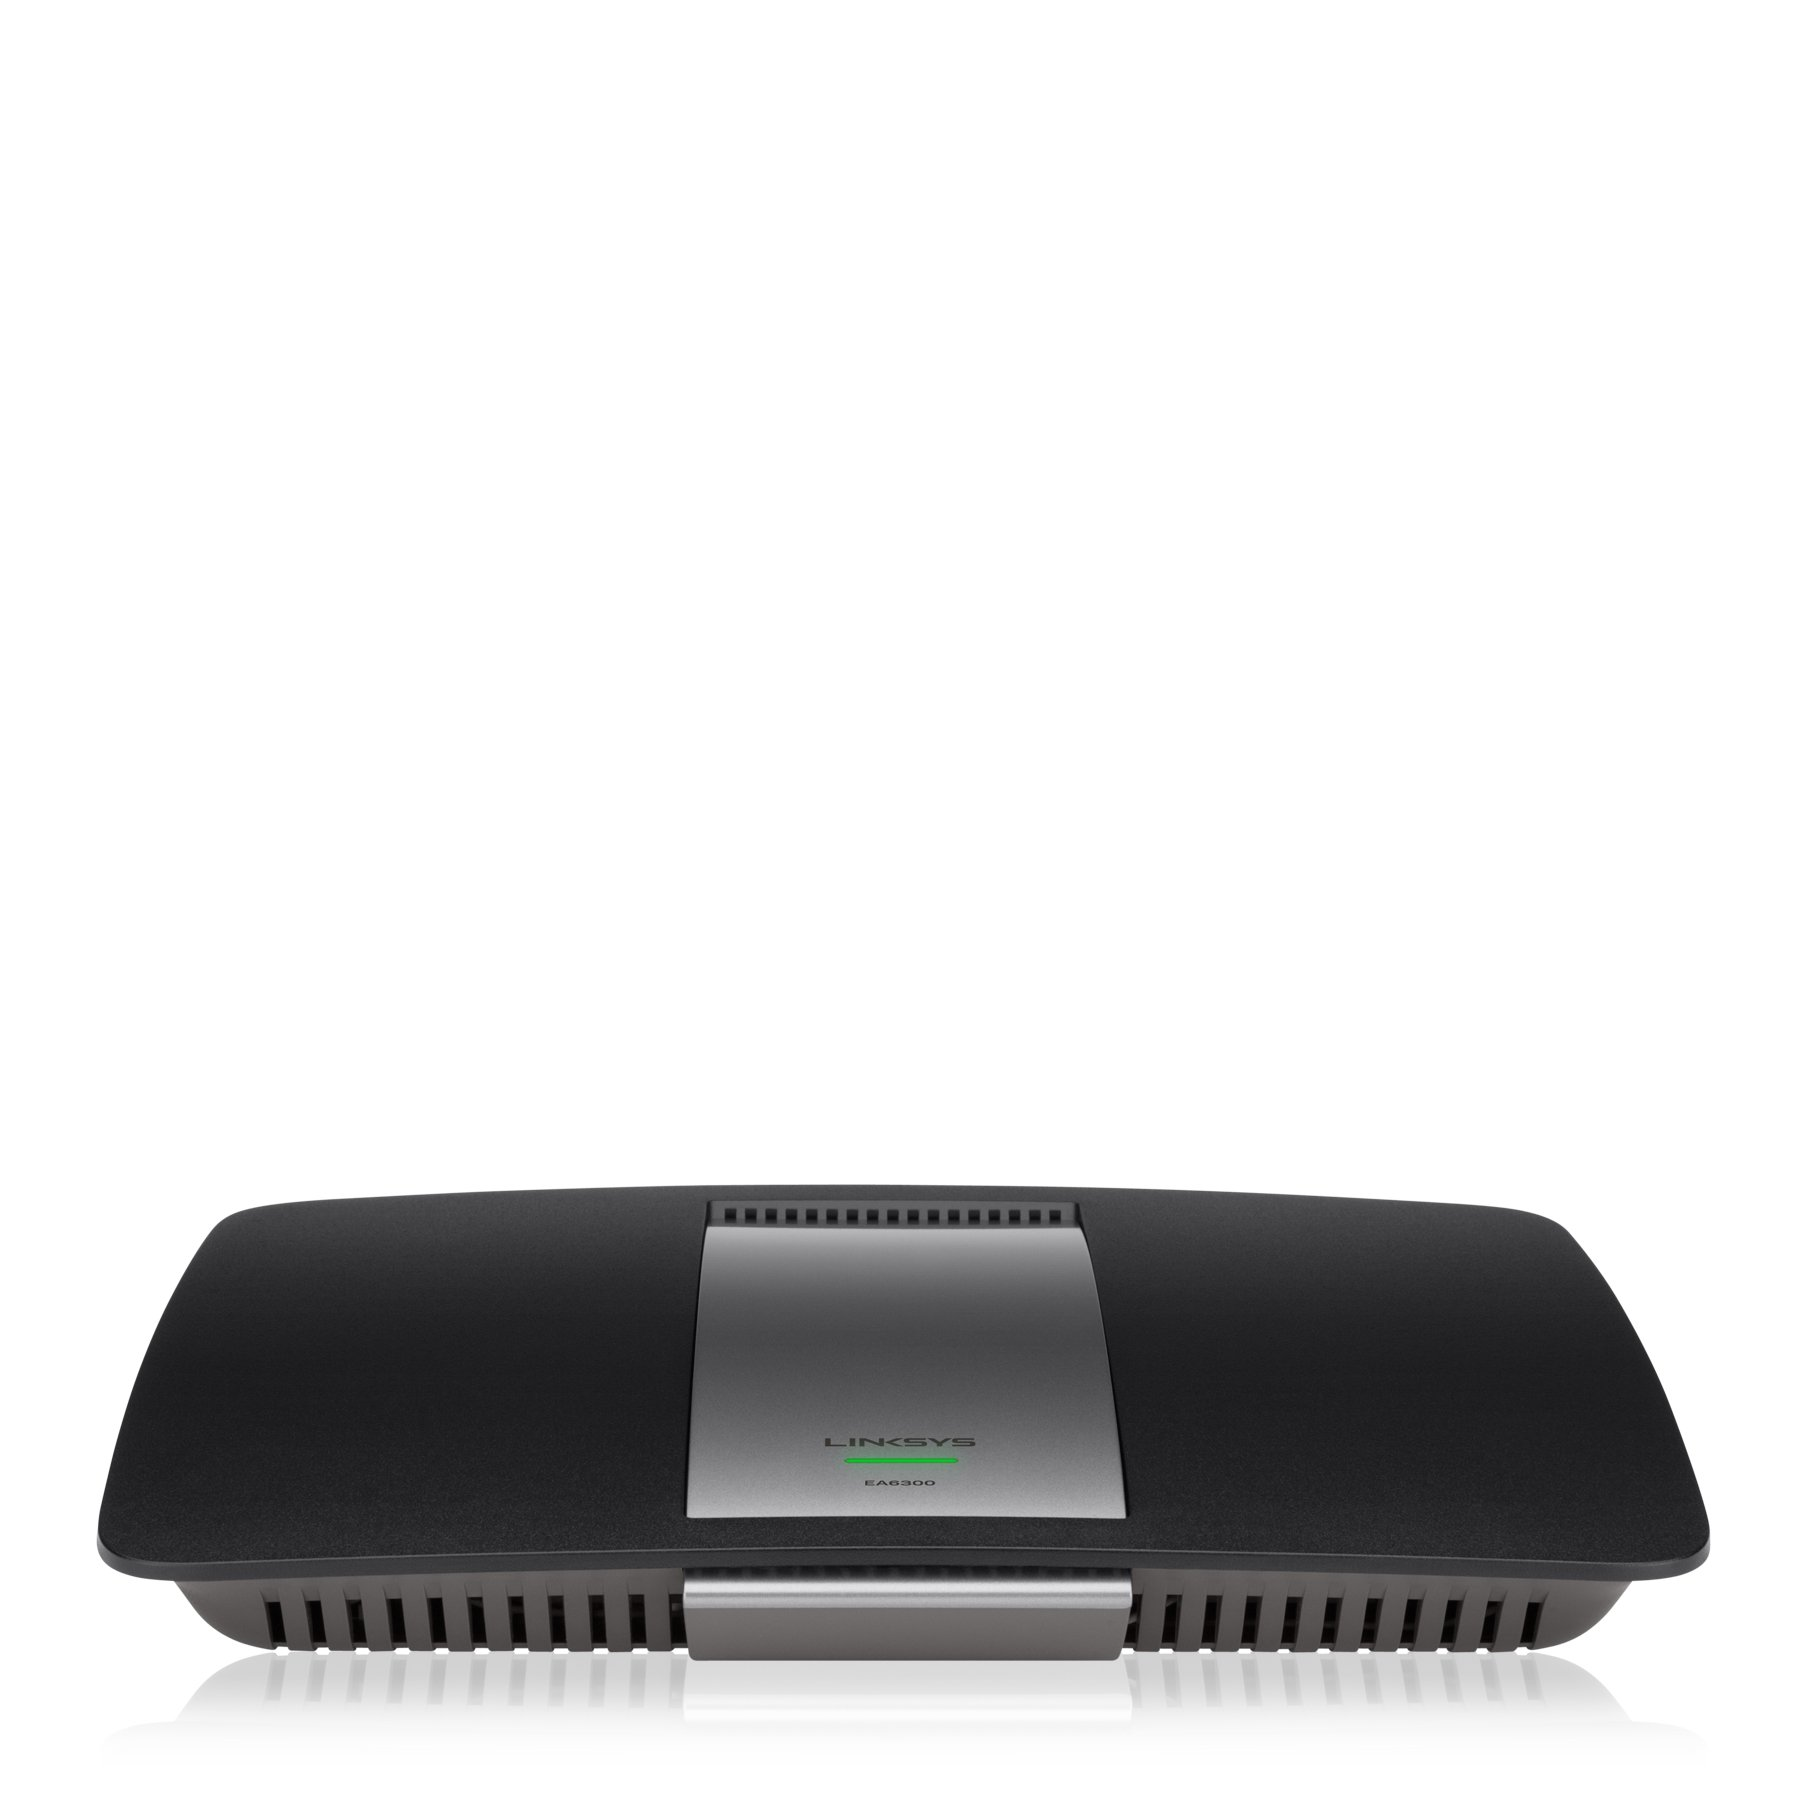 Linksys EA6300 Advanced Multimedia AC1200 Smart WiFi Wireless Router (Dual-Band 2.4 + 5GHz 802.) by Linksys